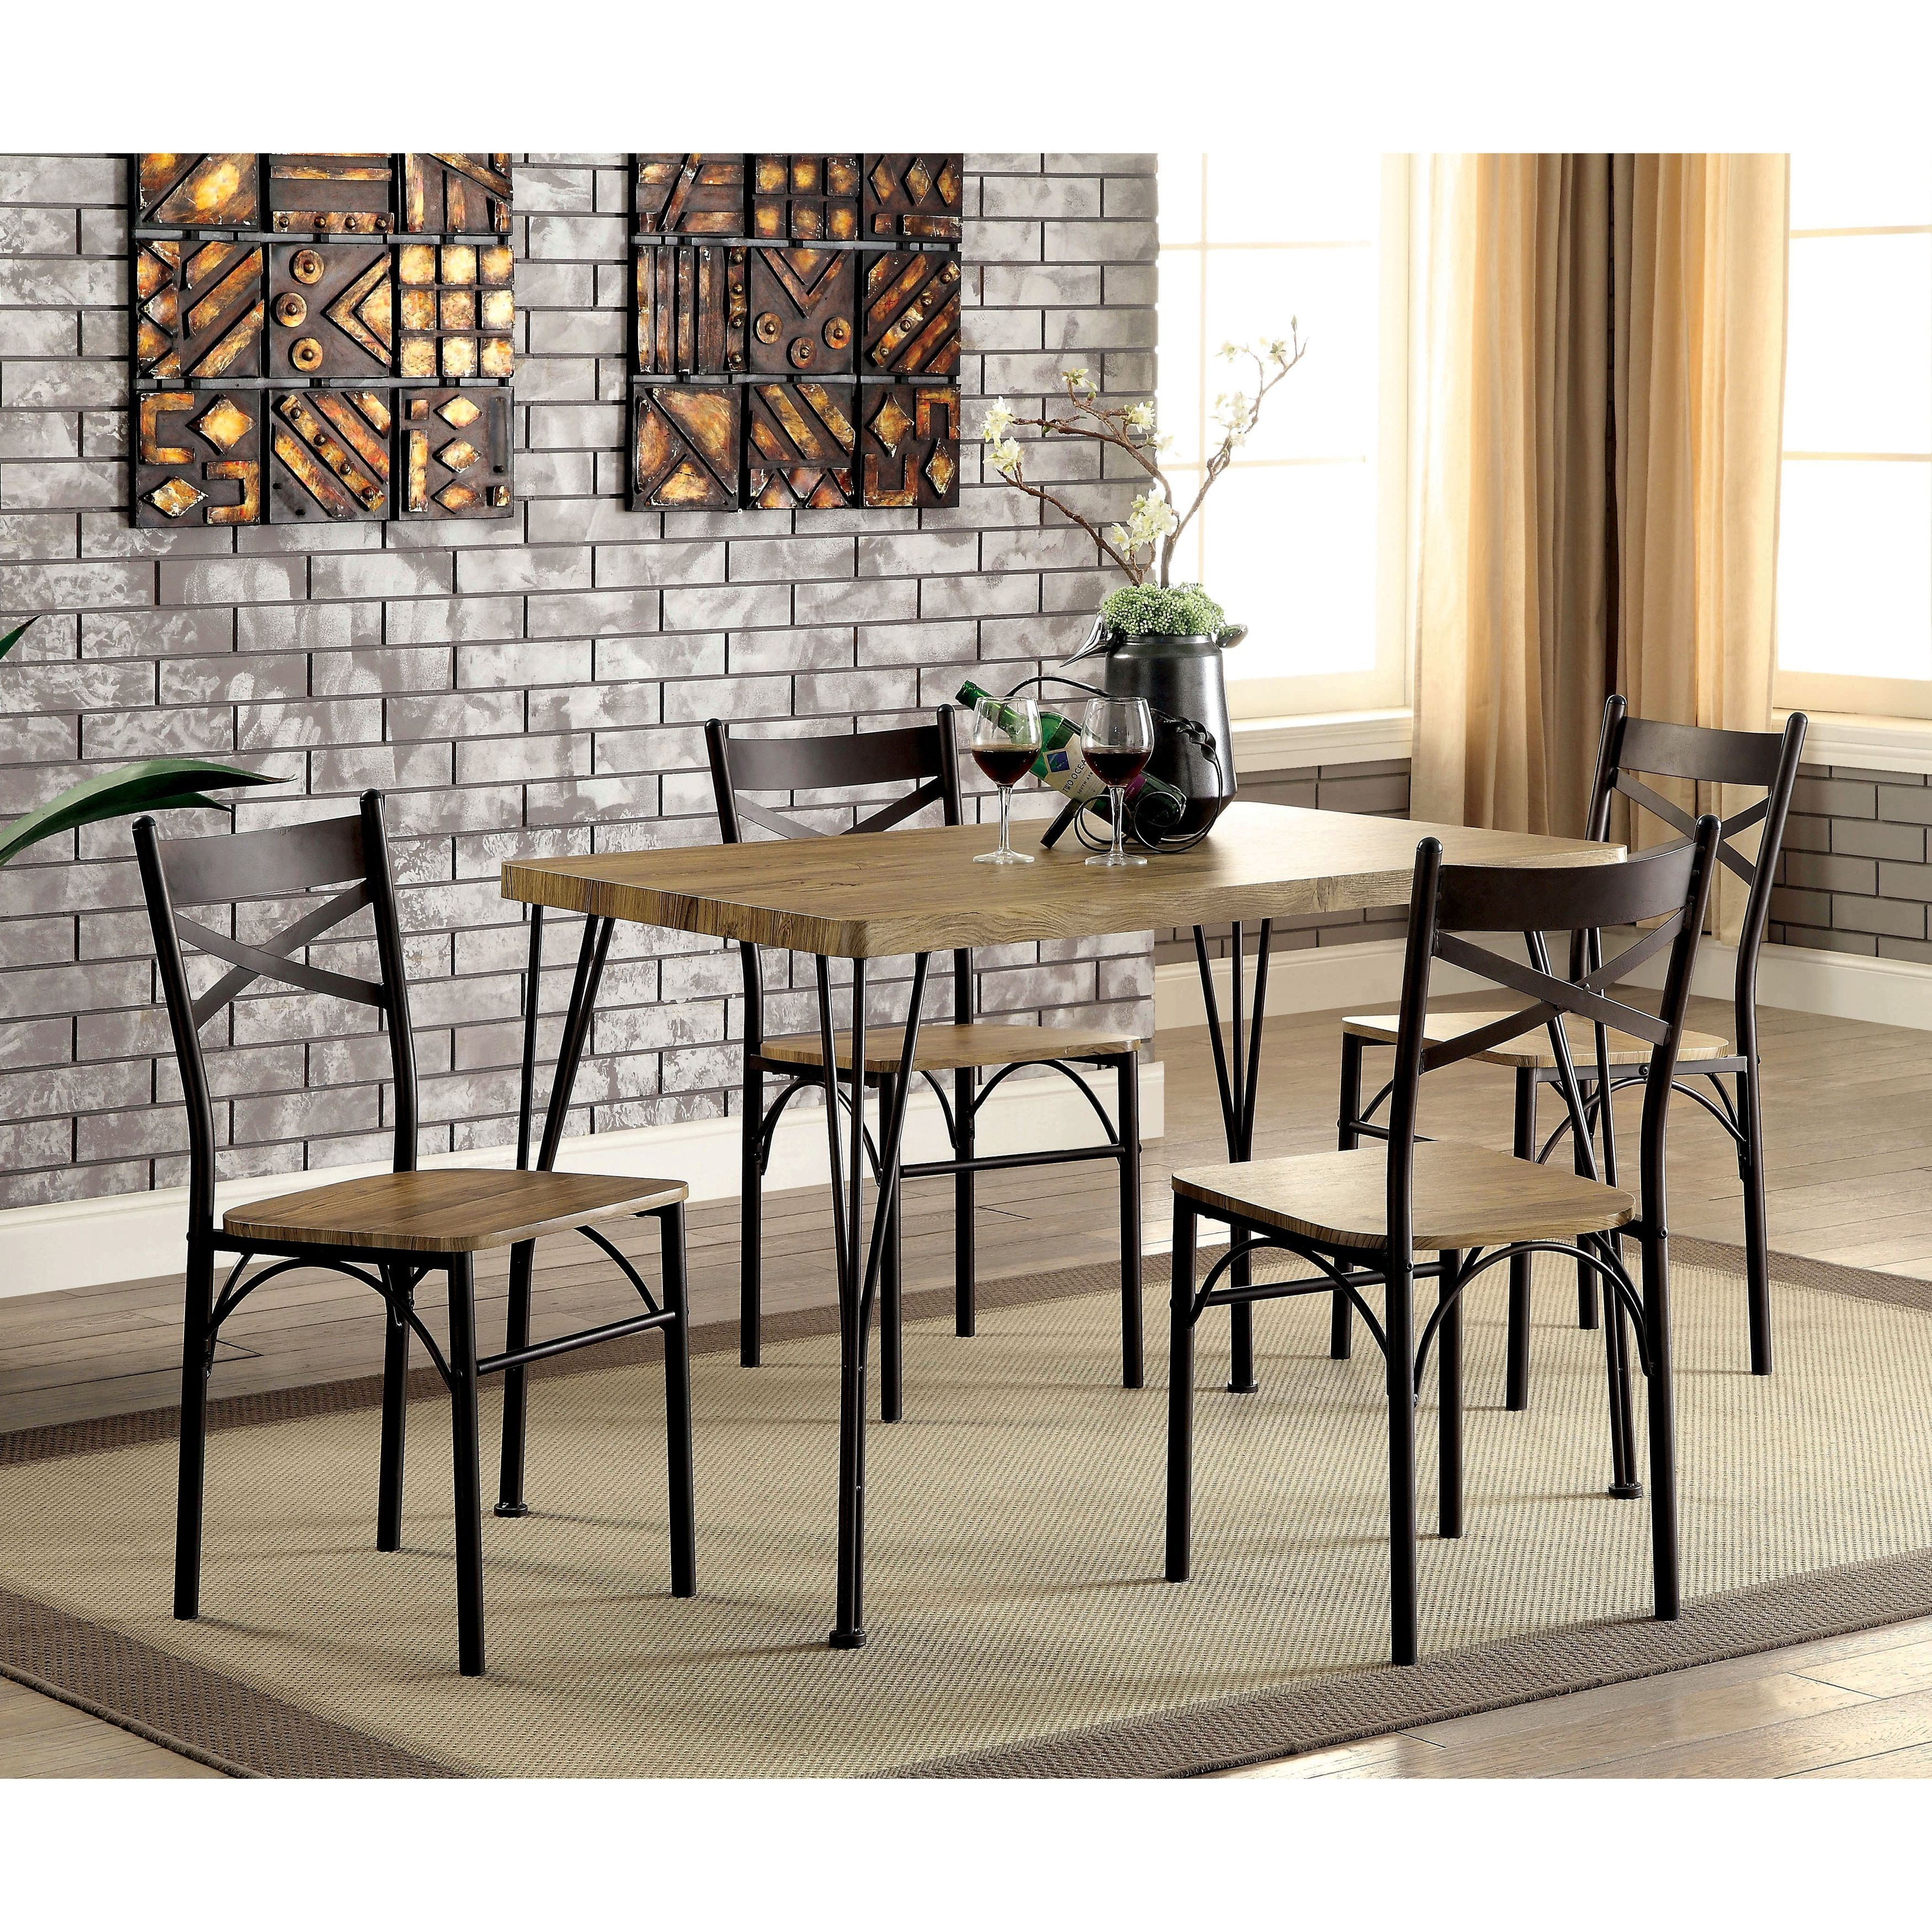 Furniture Of America Hathway Industrial 5 Piece Dark Bronze Small Inside Best And Newest Casiano 5 Piece Dining Sets (Image 9 of 20)